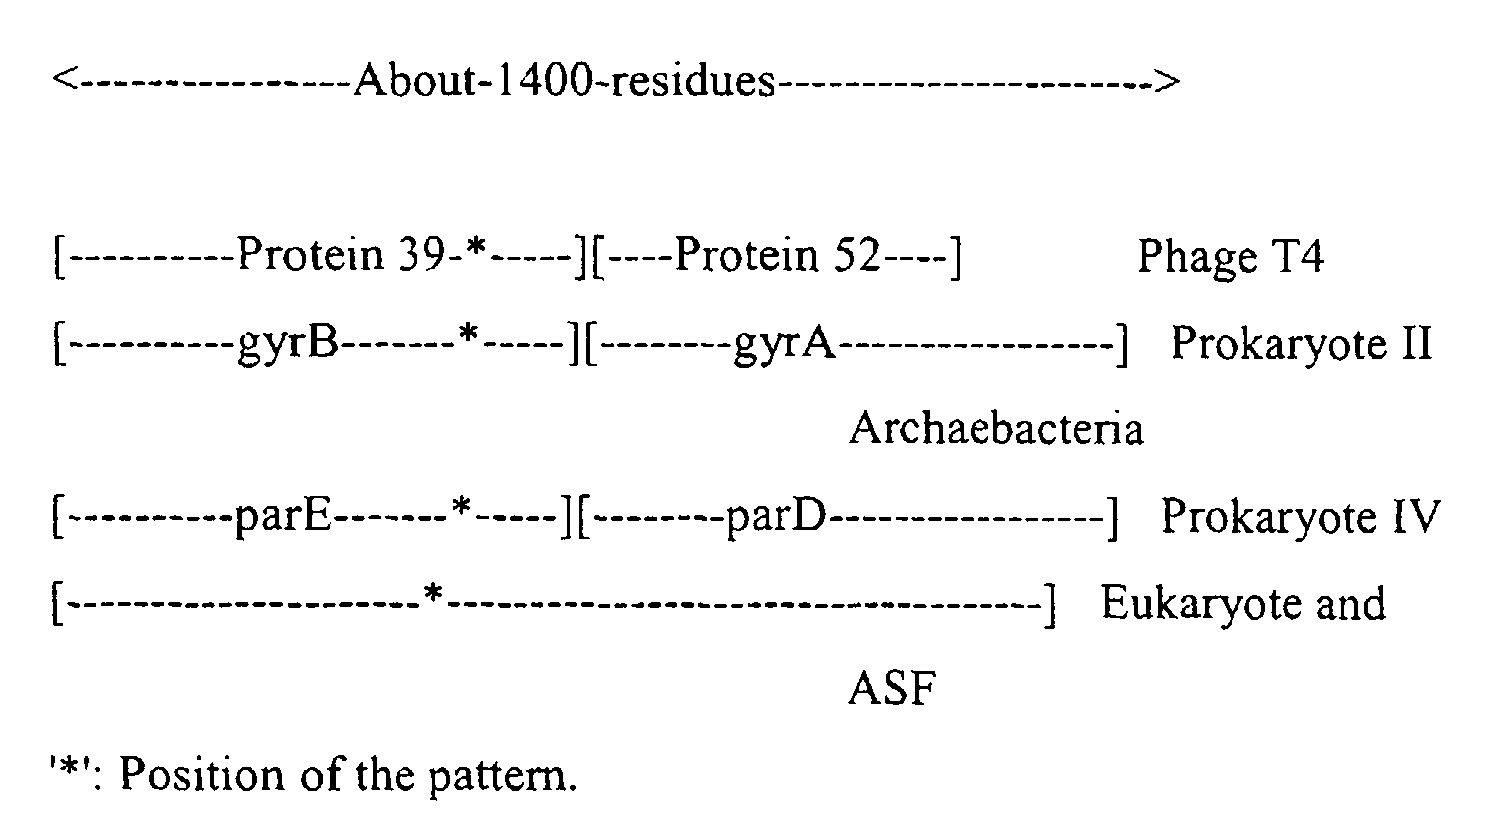 EP1059354A2 - Sequence-determined DNA fragments and corresponding